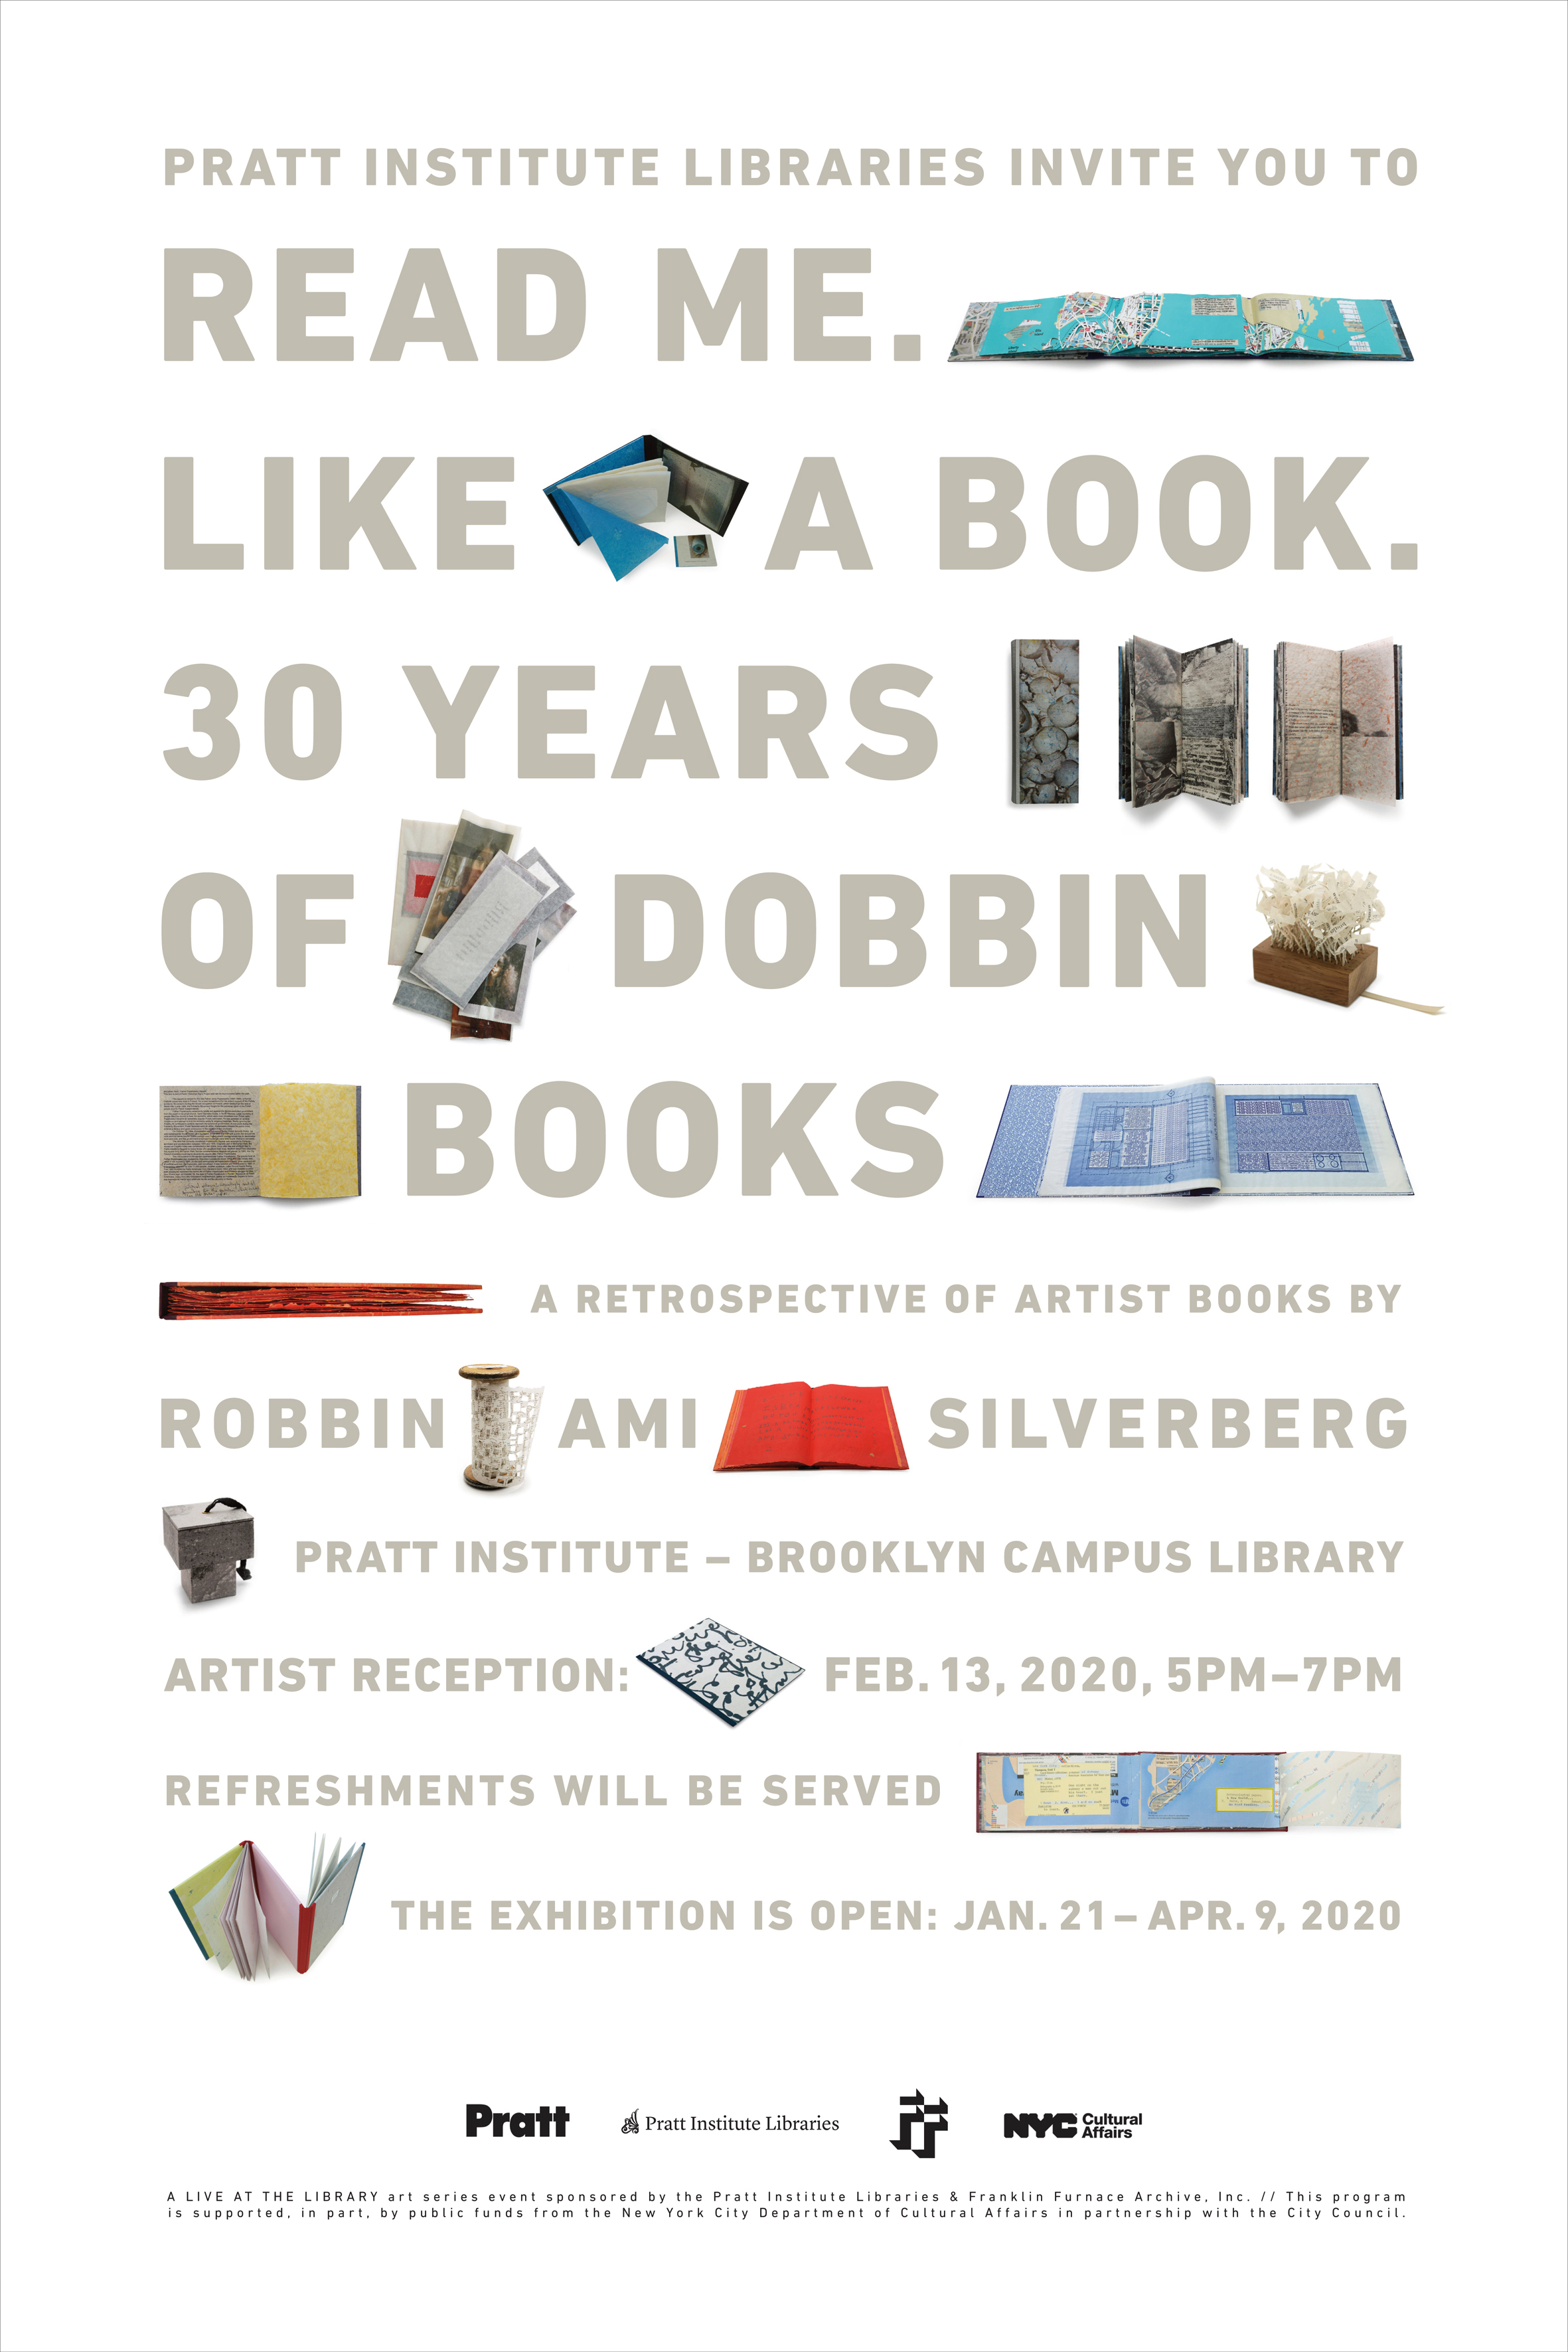 Read Me. Like A Book. 30 Year of Dobbin Books: A Retrospective of Artist Books by Robbin Ami Silverberg